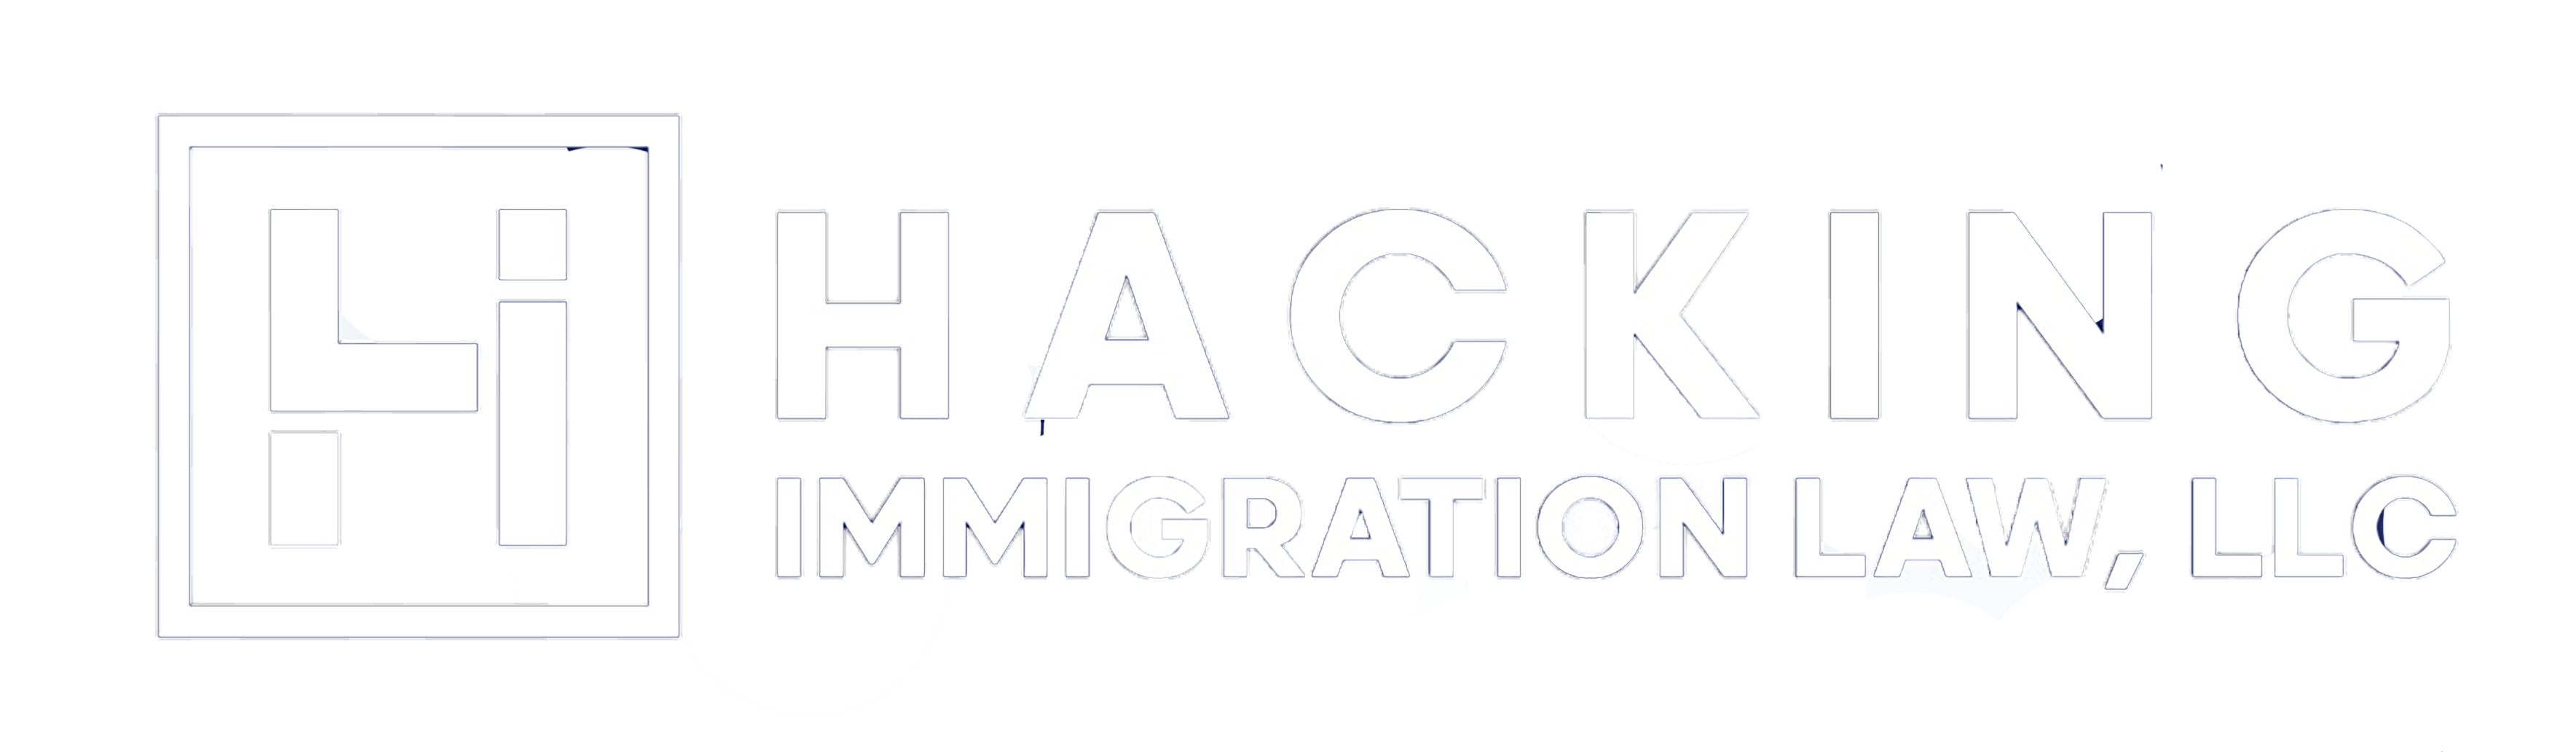 Hacking Immigration Law, LLC.